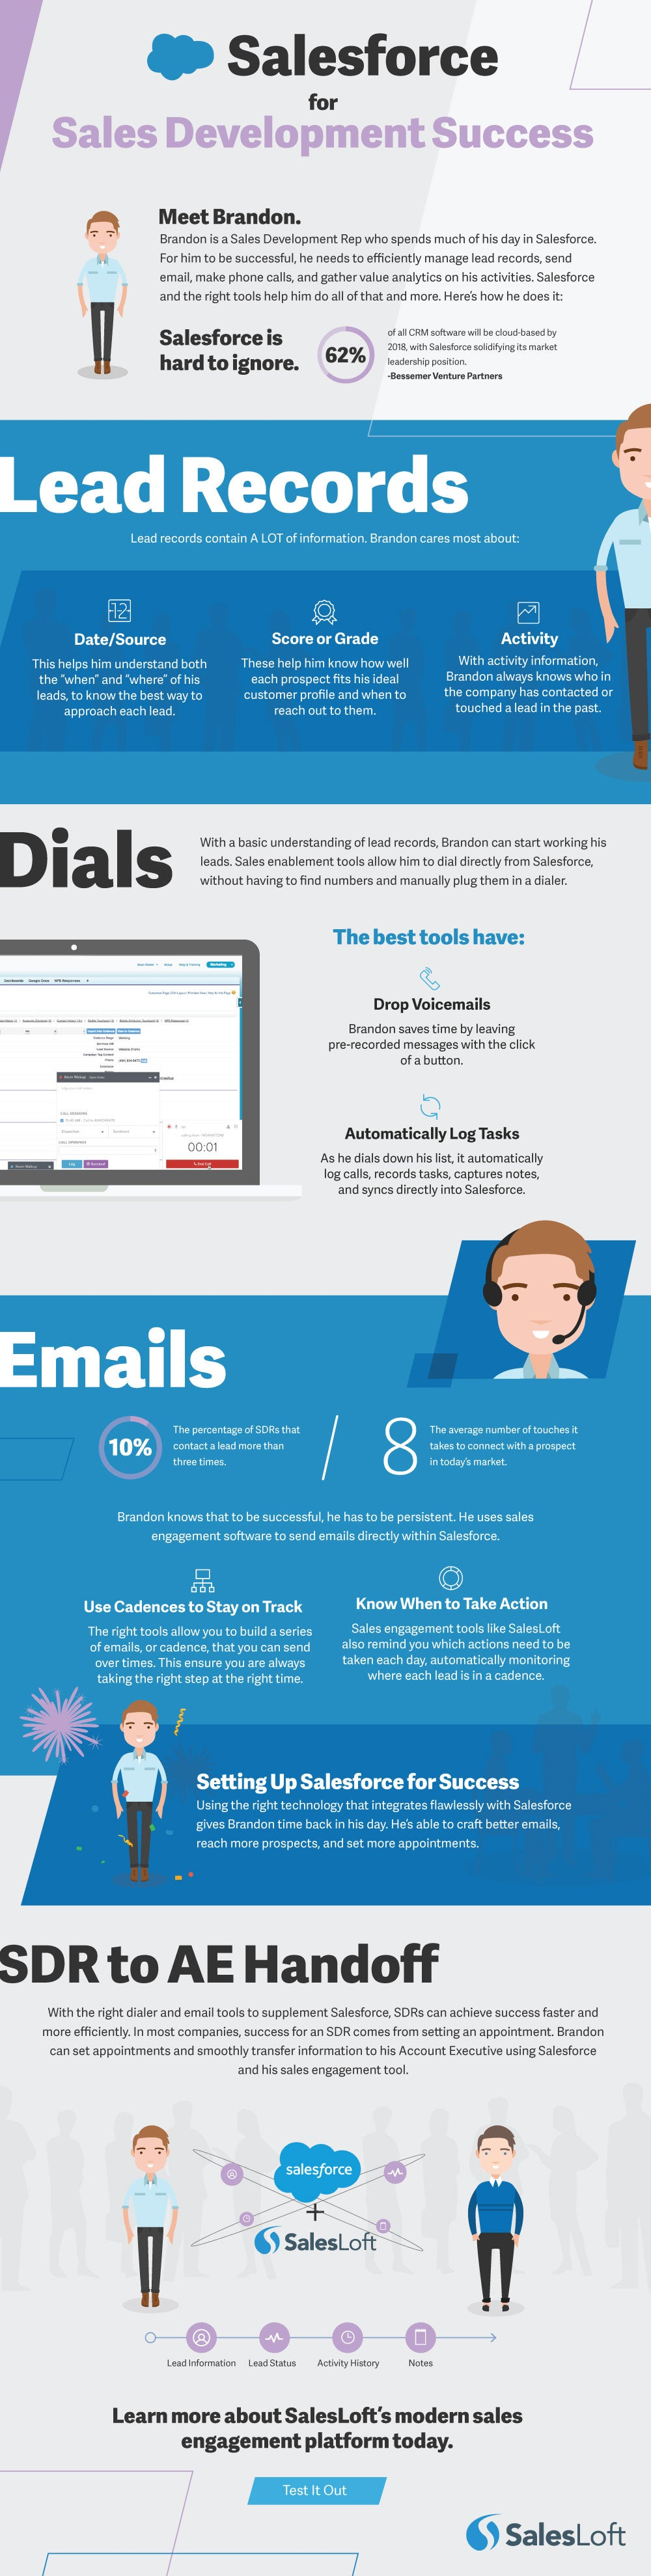 salesforce SDR infographic